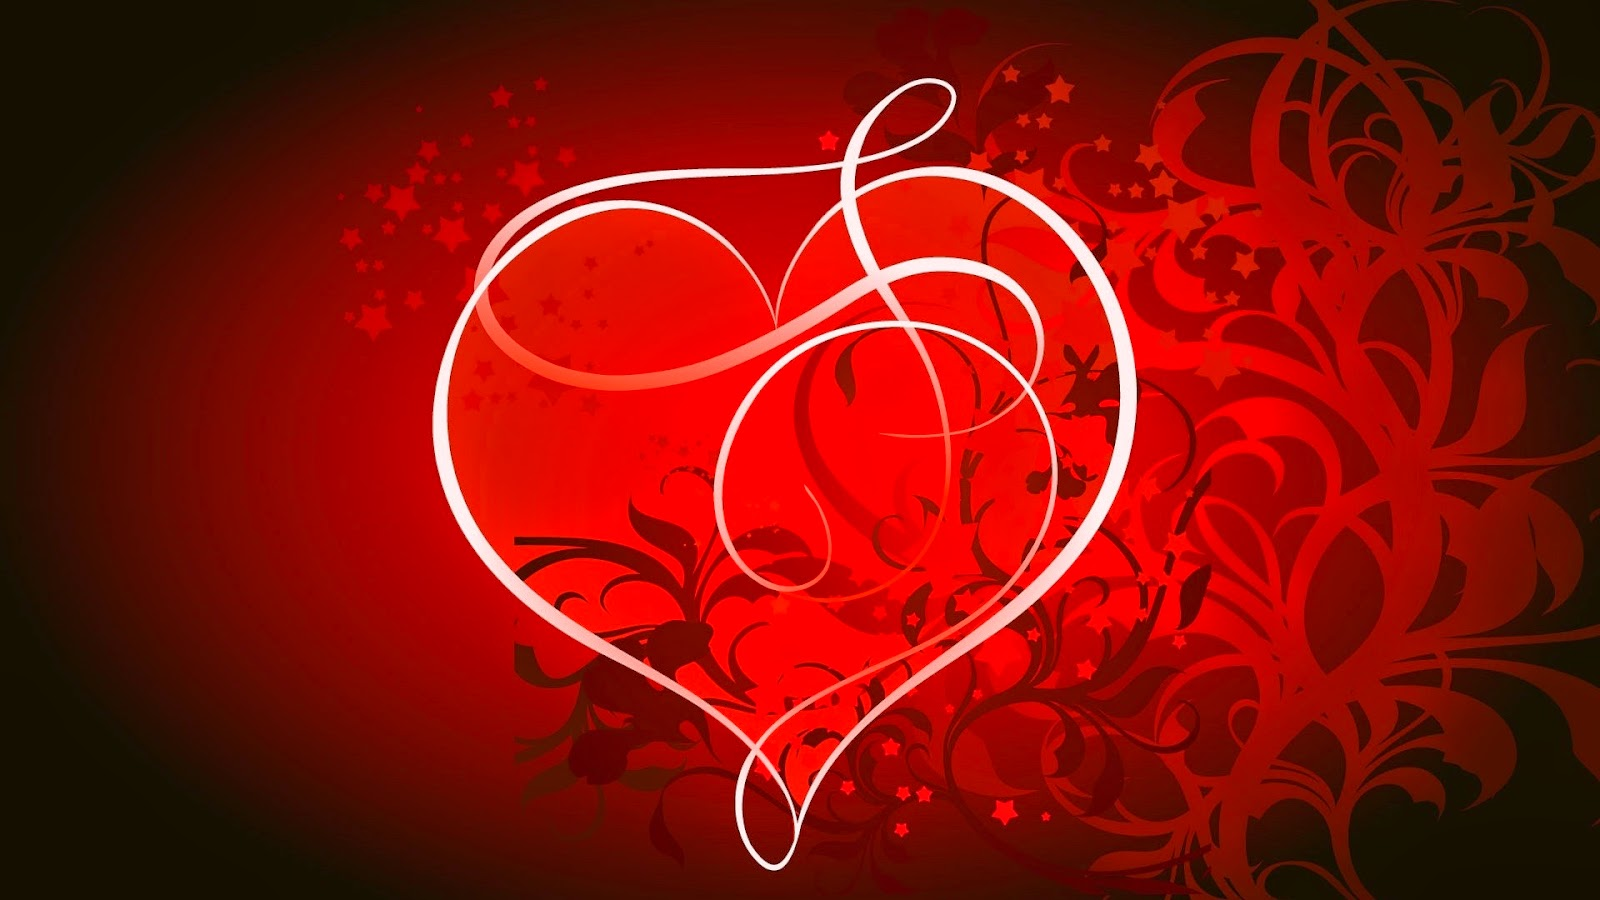 Beautiful Love Heart Images